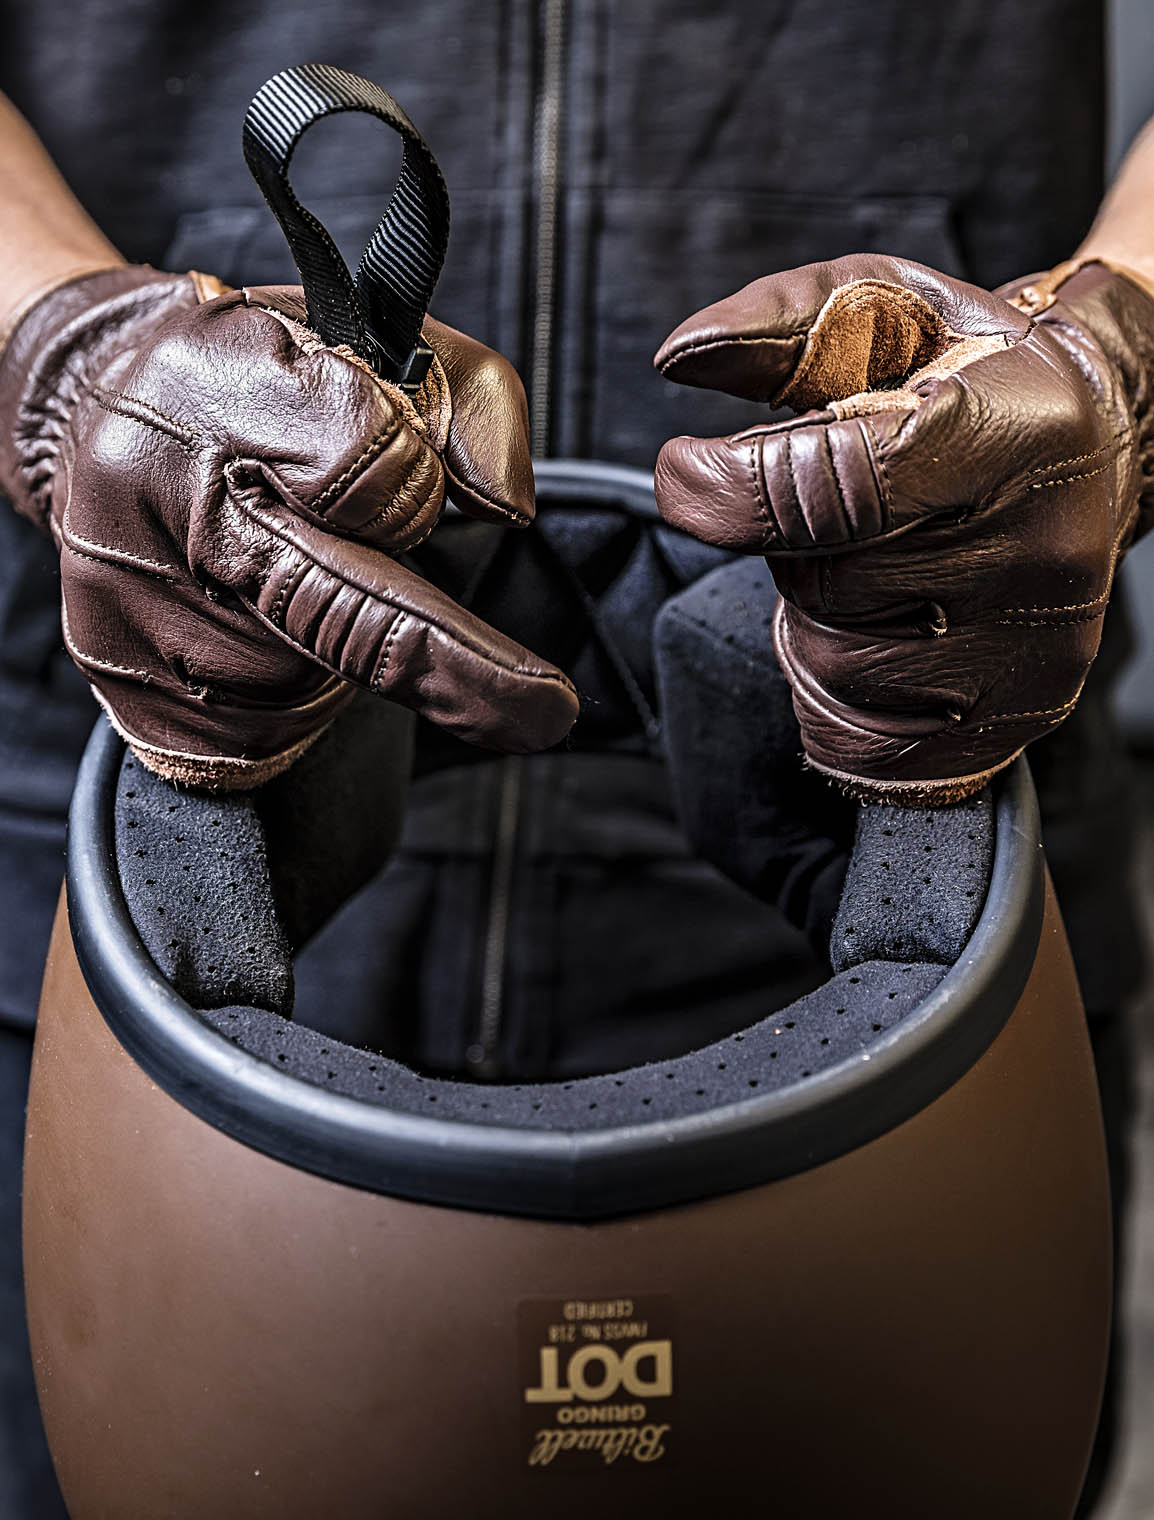 titan_shirt_motorcycles_custom_product_gloves